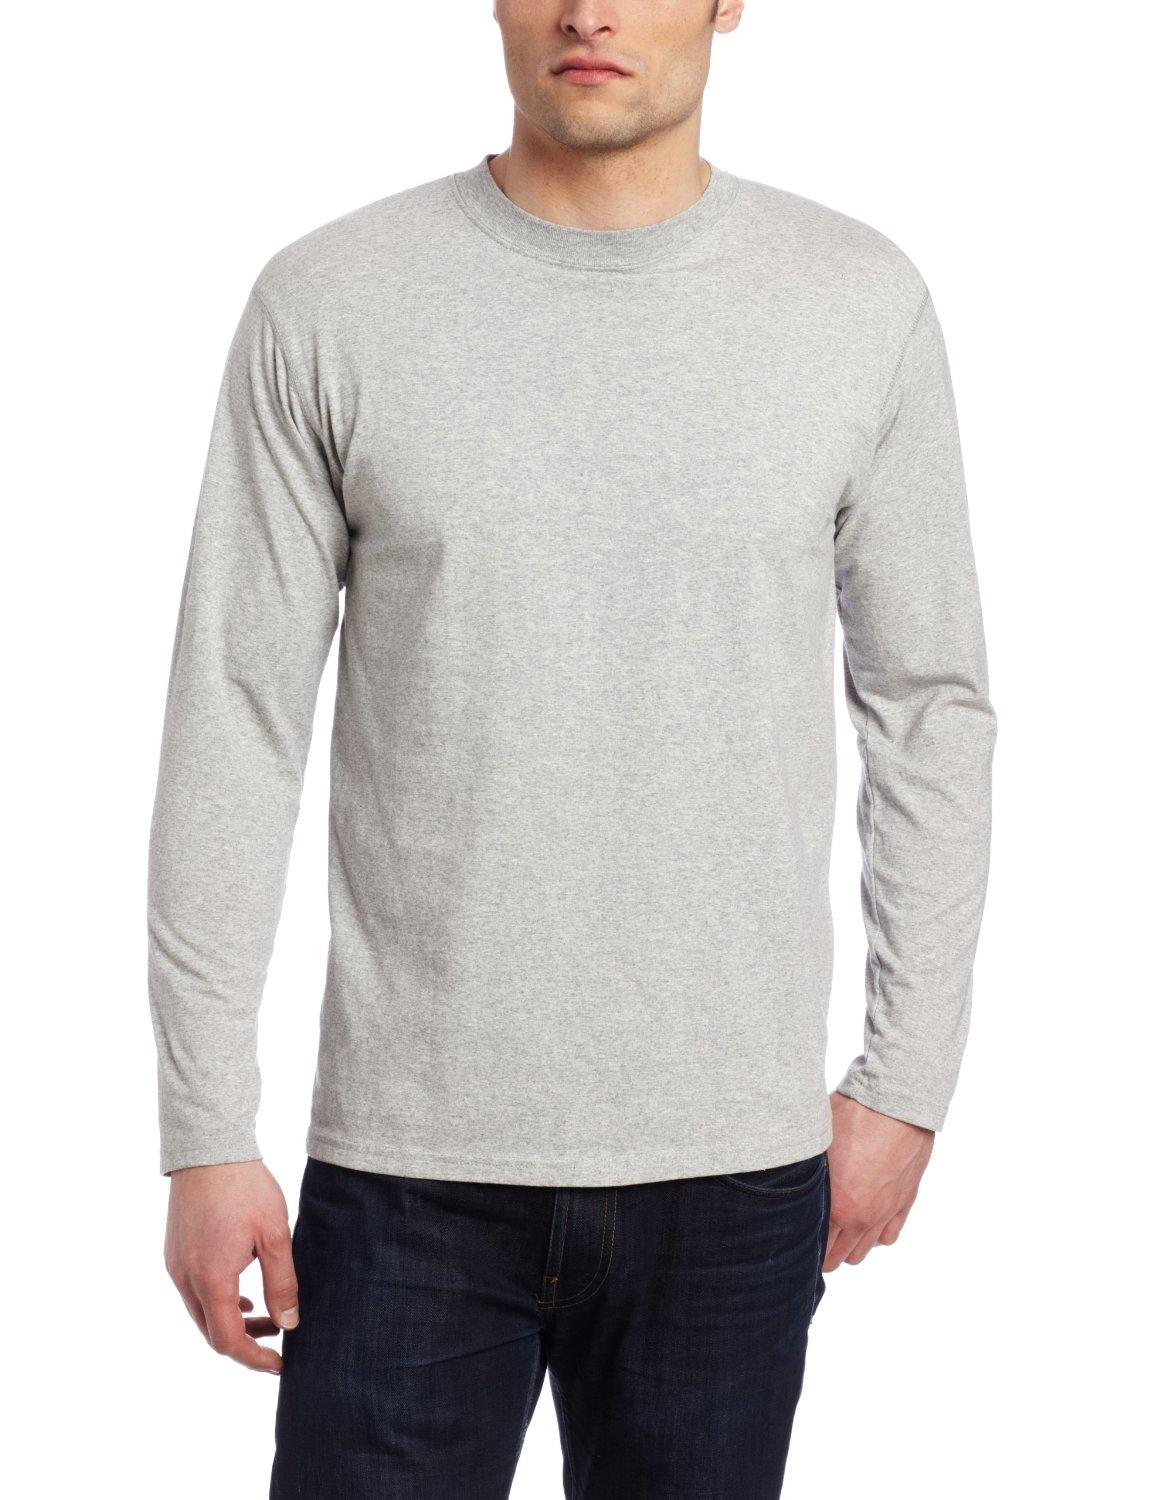 ExOfficio Men's BugsAway Chas'r Crew Long Sleeve Shirt